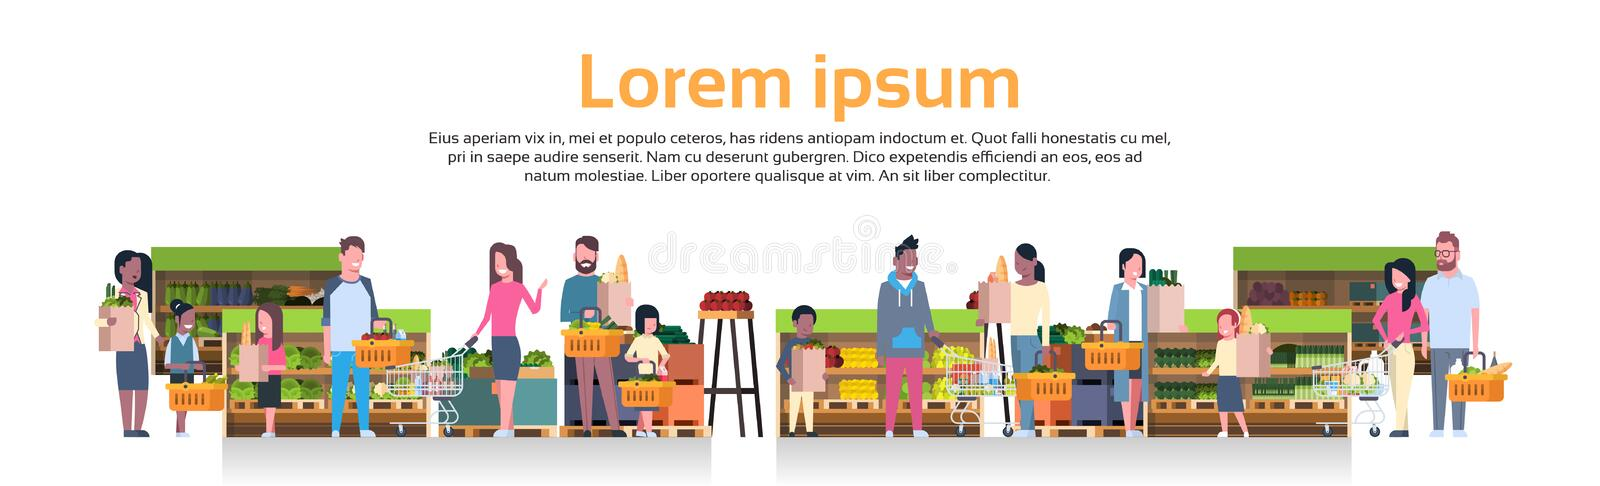 Group Of People Holding Bags, Baskets And Pushing Trolleys Over Supermarket Shelves With Grocery Products Consumerism royalty free illustration